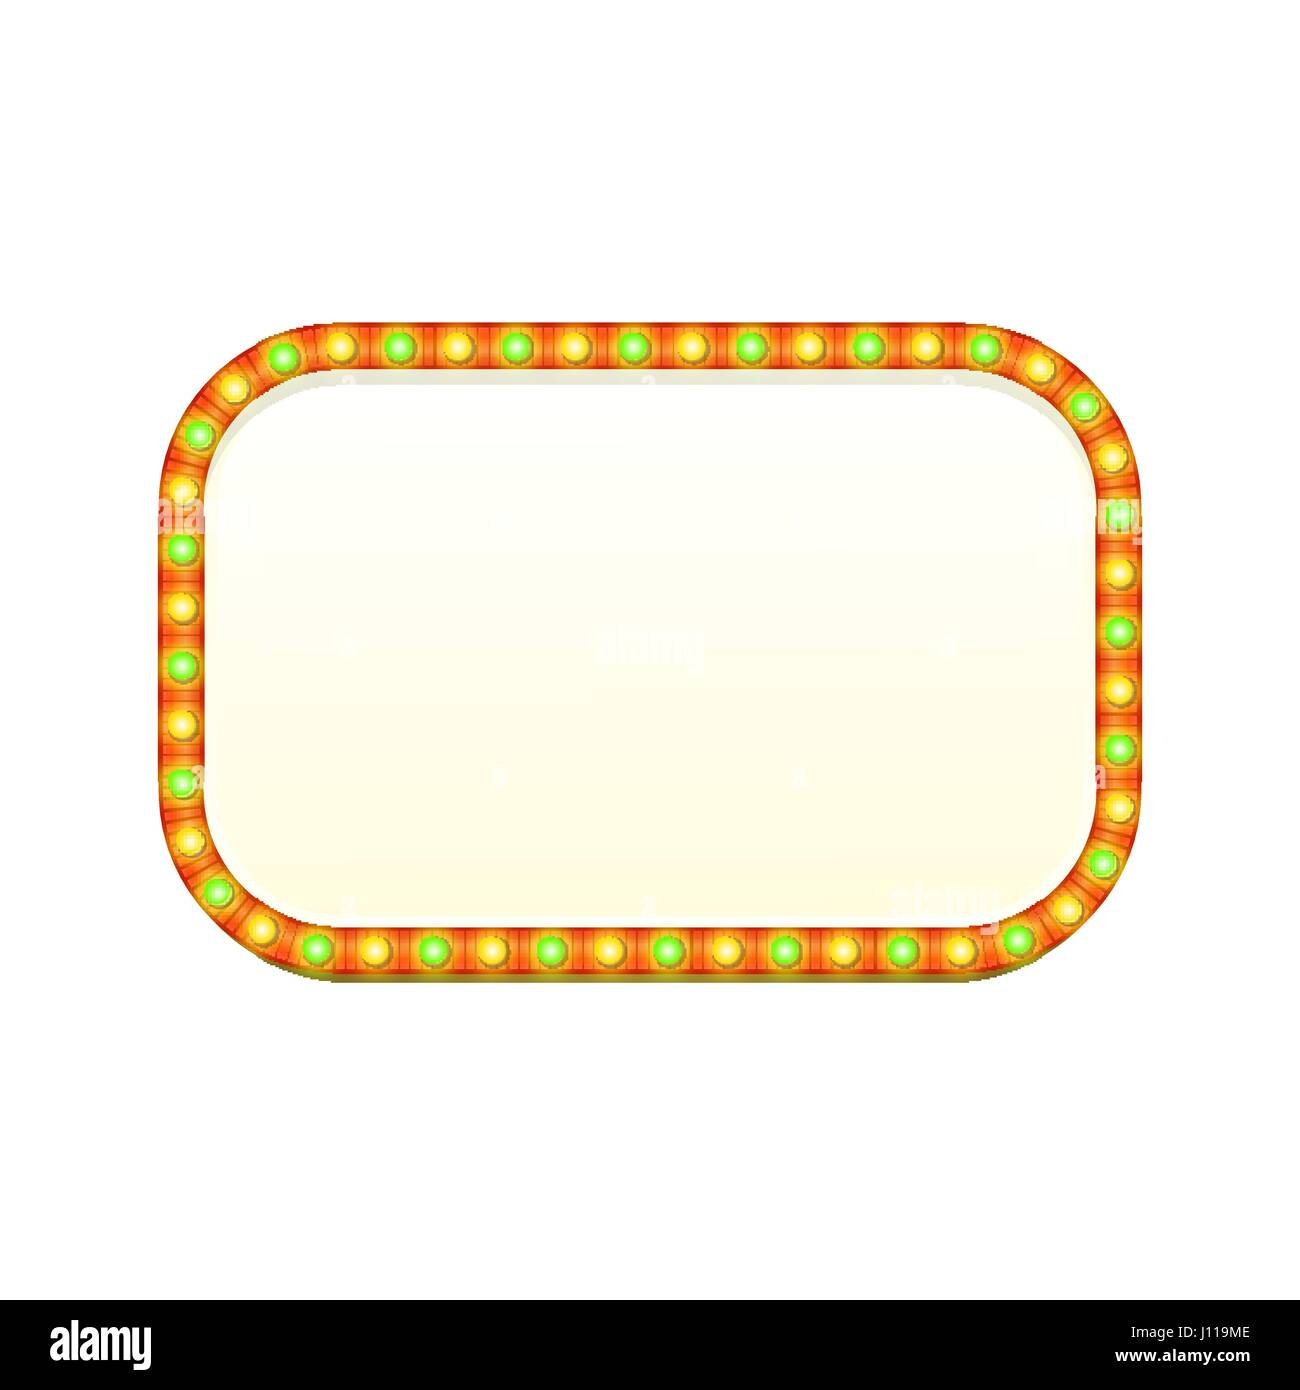 Blank 3d rectangular retro light banner with shining lights. Red sign with green and yellow bulbs and blank space - Stock Vector